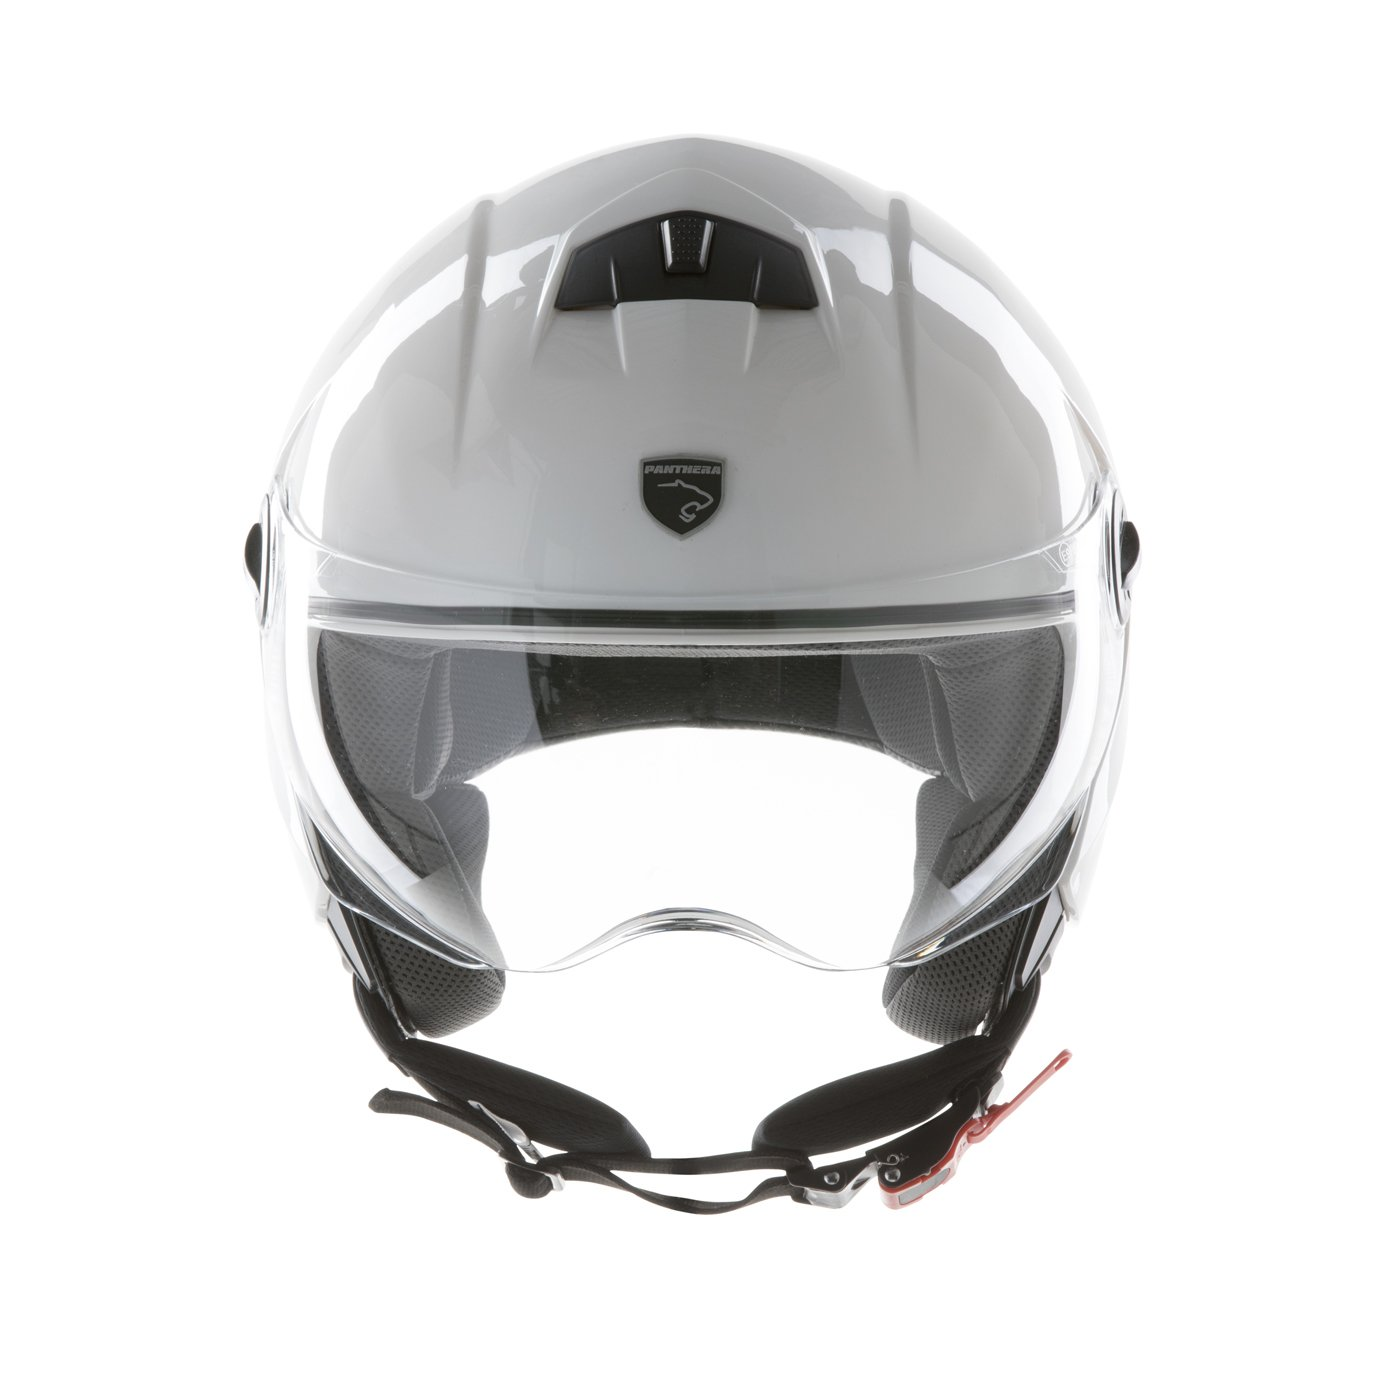 PANTHERA casque moto demi jet City noir mat taille XS Rider Valley FS715W-MBKXS